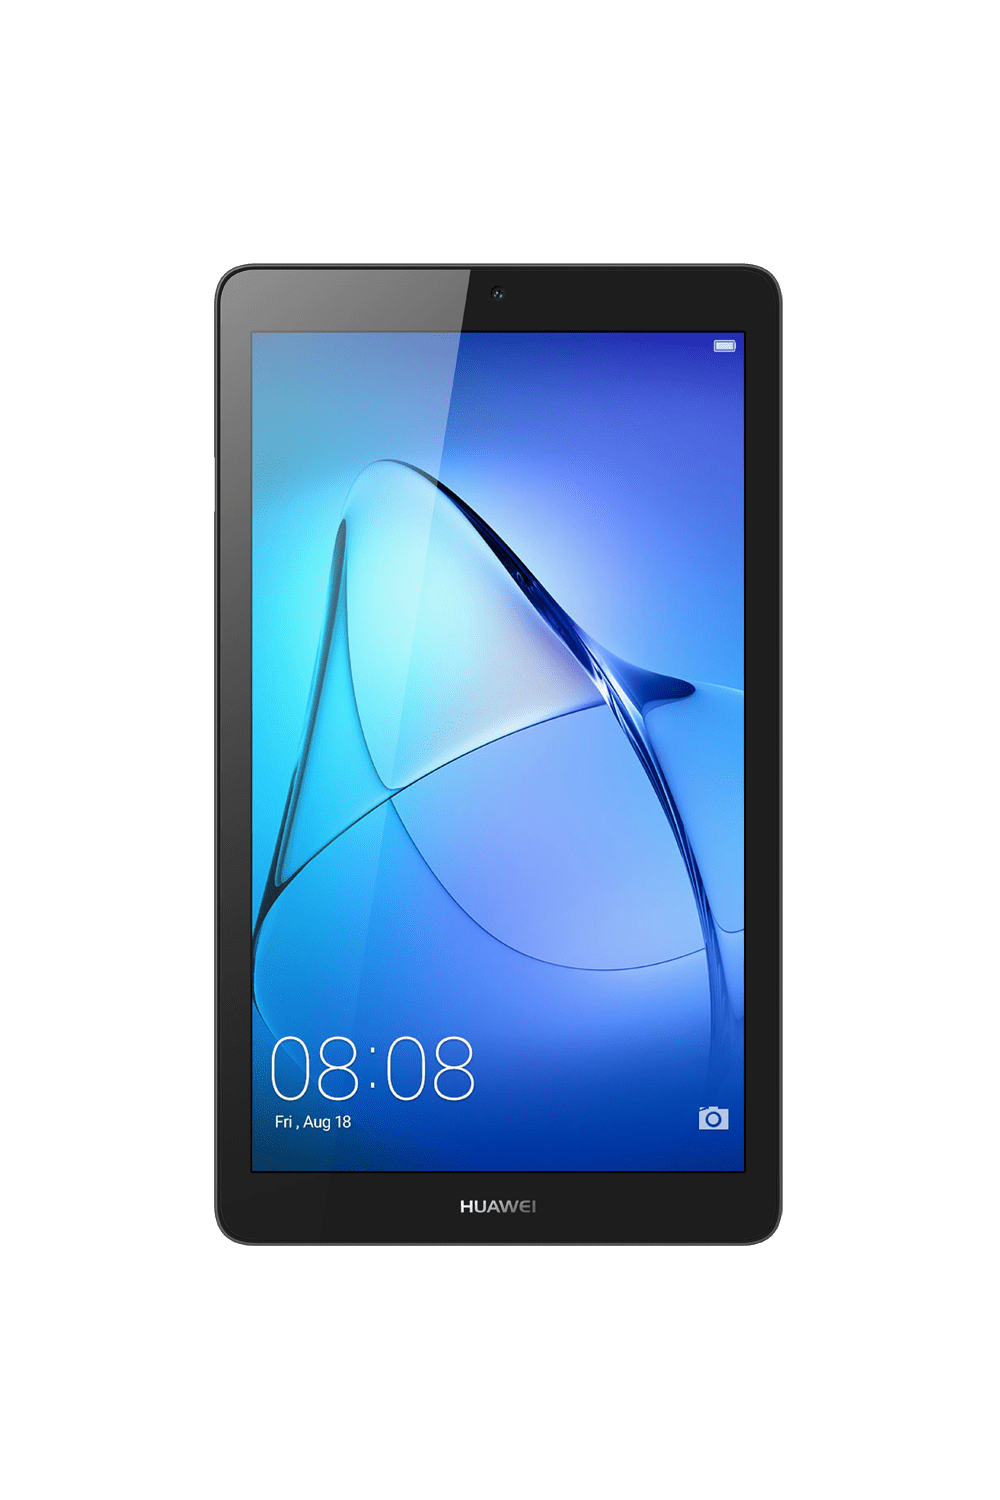 Huawei Media Pad T3-7 inch 16GB Android Tablet by Huawei